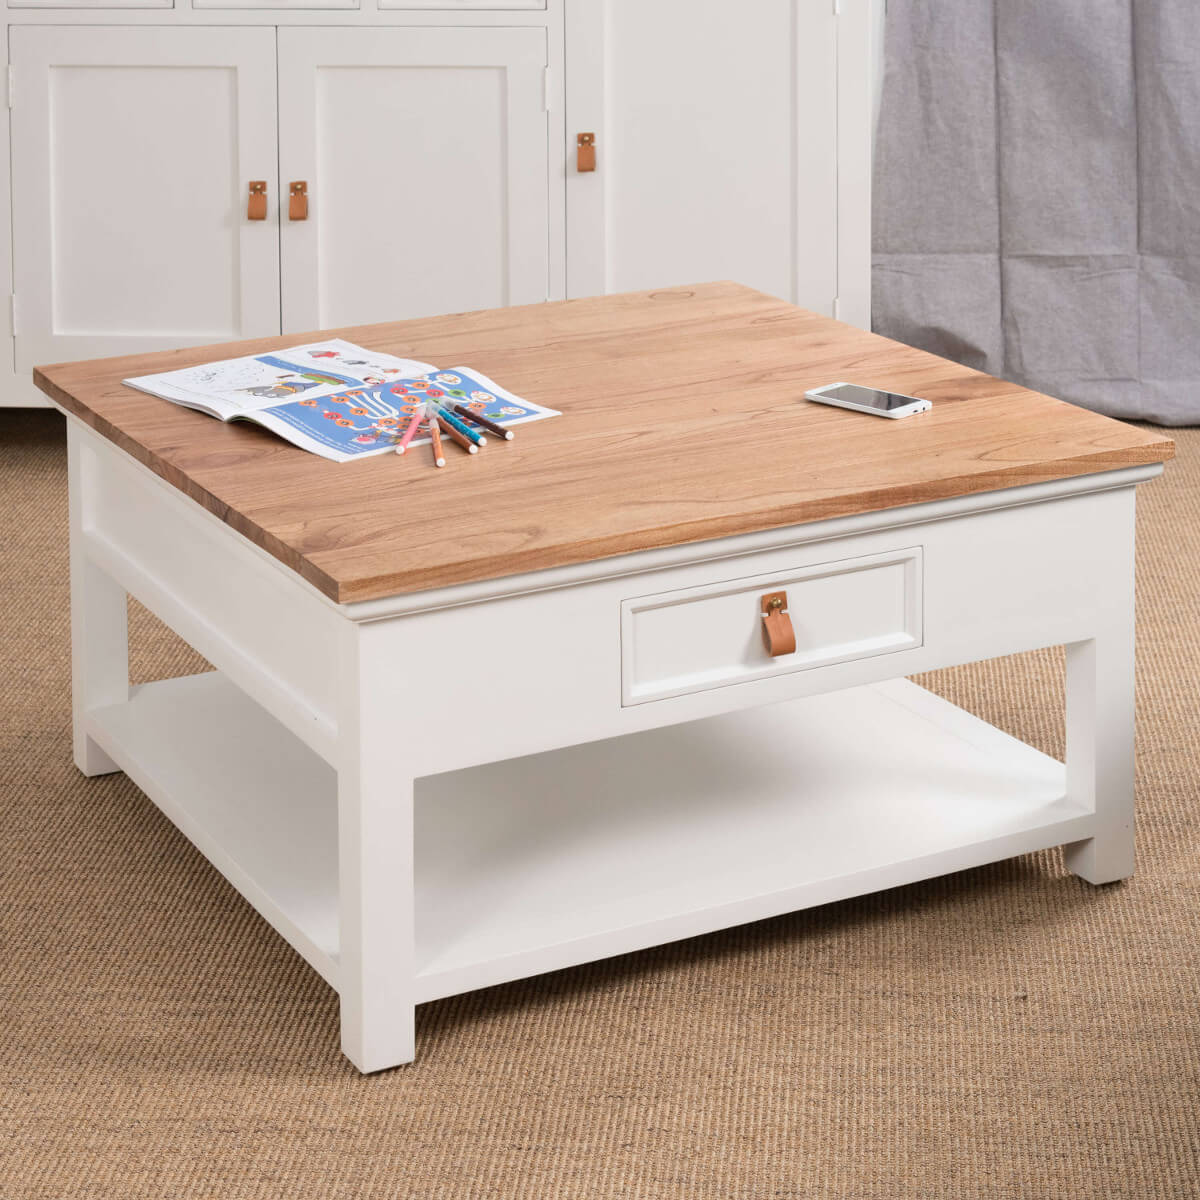 Table basse blanche table basse acajou carr e bois for Table haute de salon